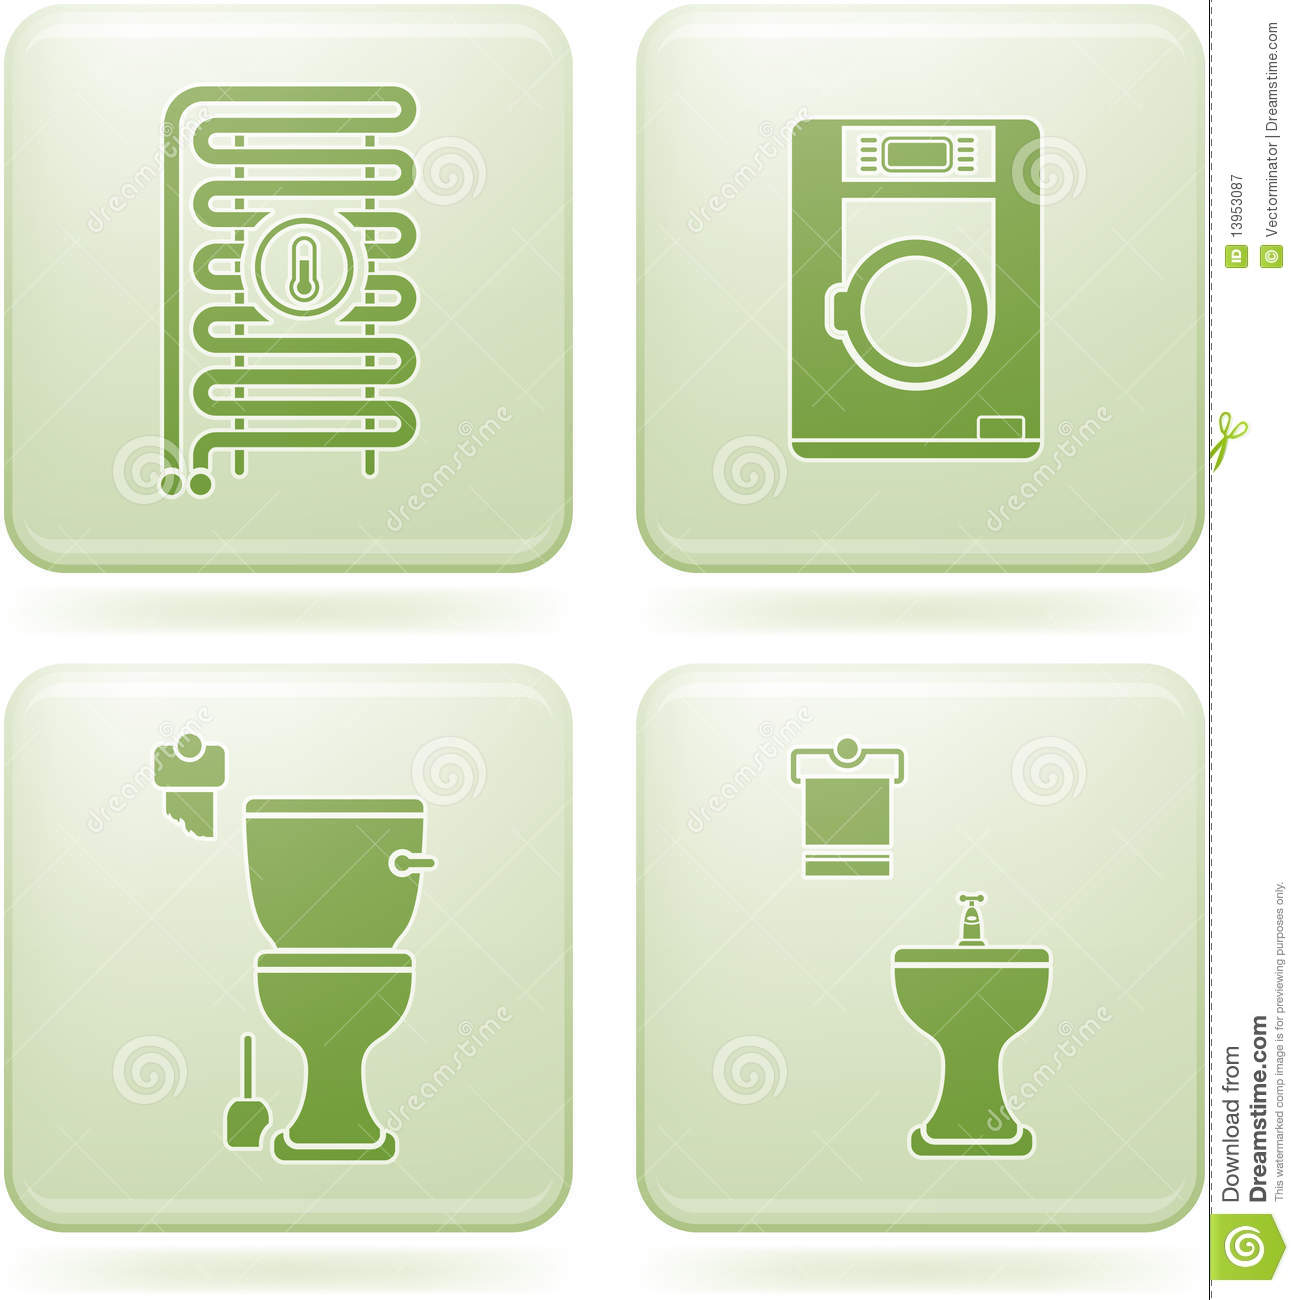 Cobalt square 2d icons set bathroom royalty free stock for Bathroom design 2d